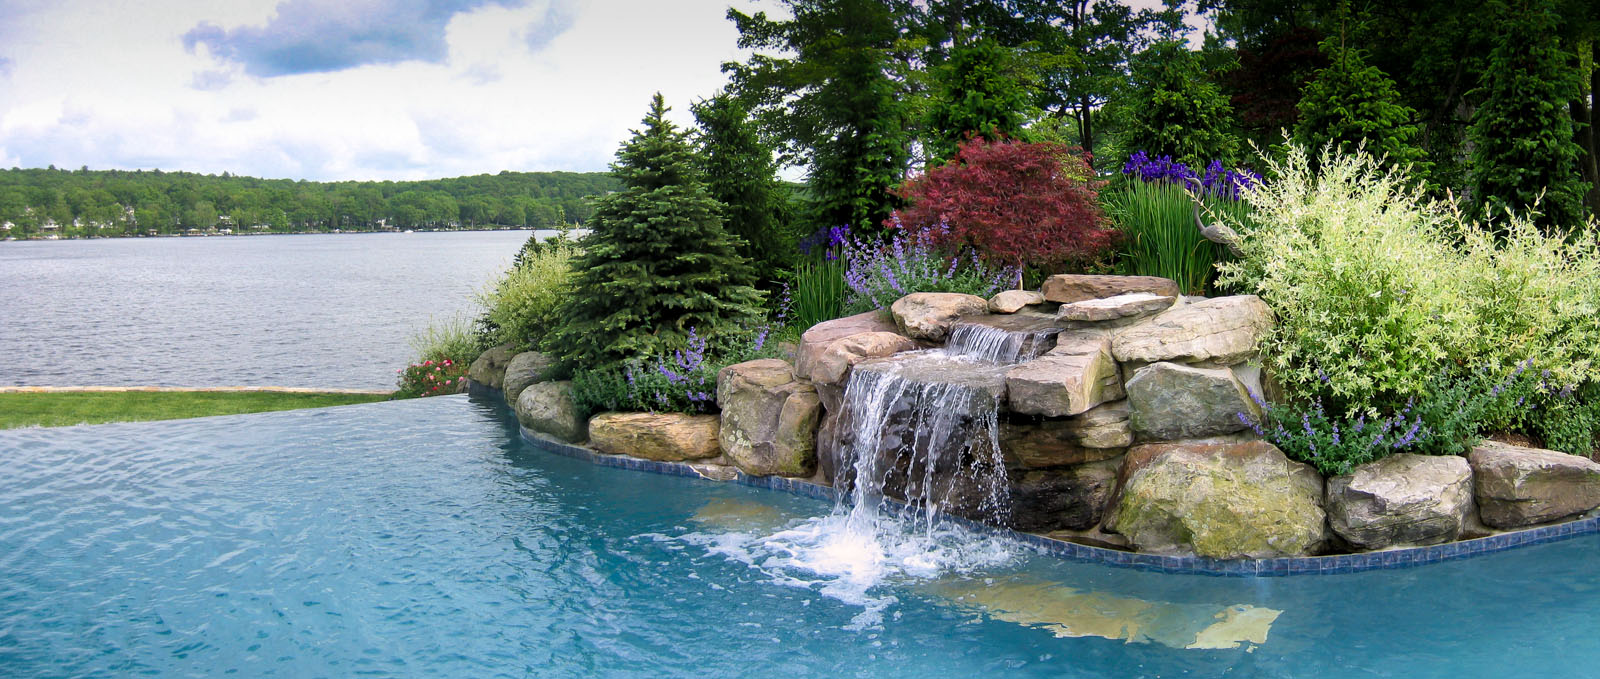 before_and_after_new jersey_clc_landscape_design_06